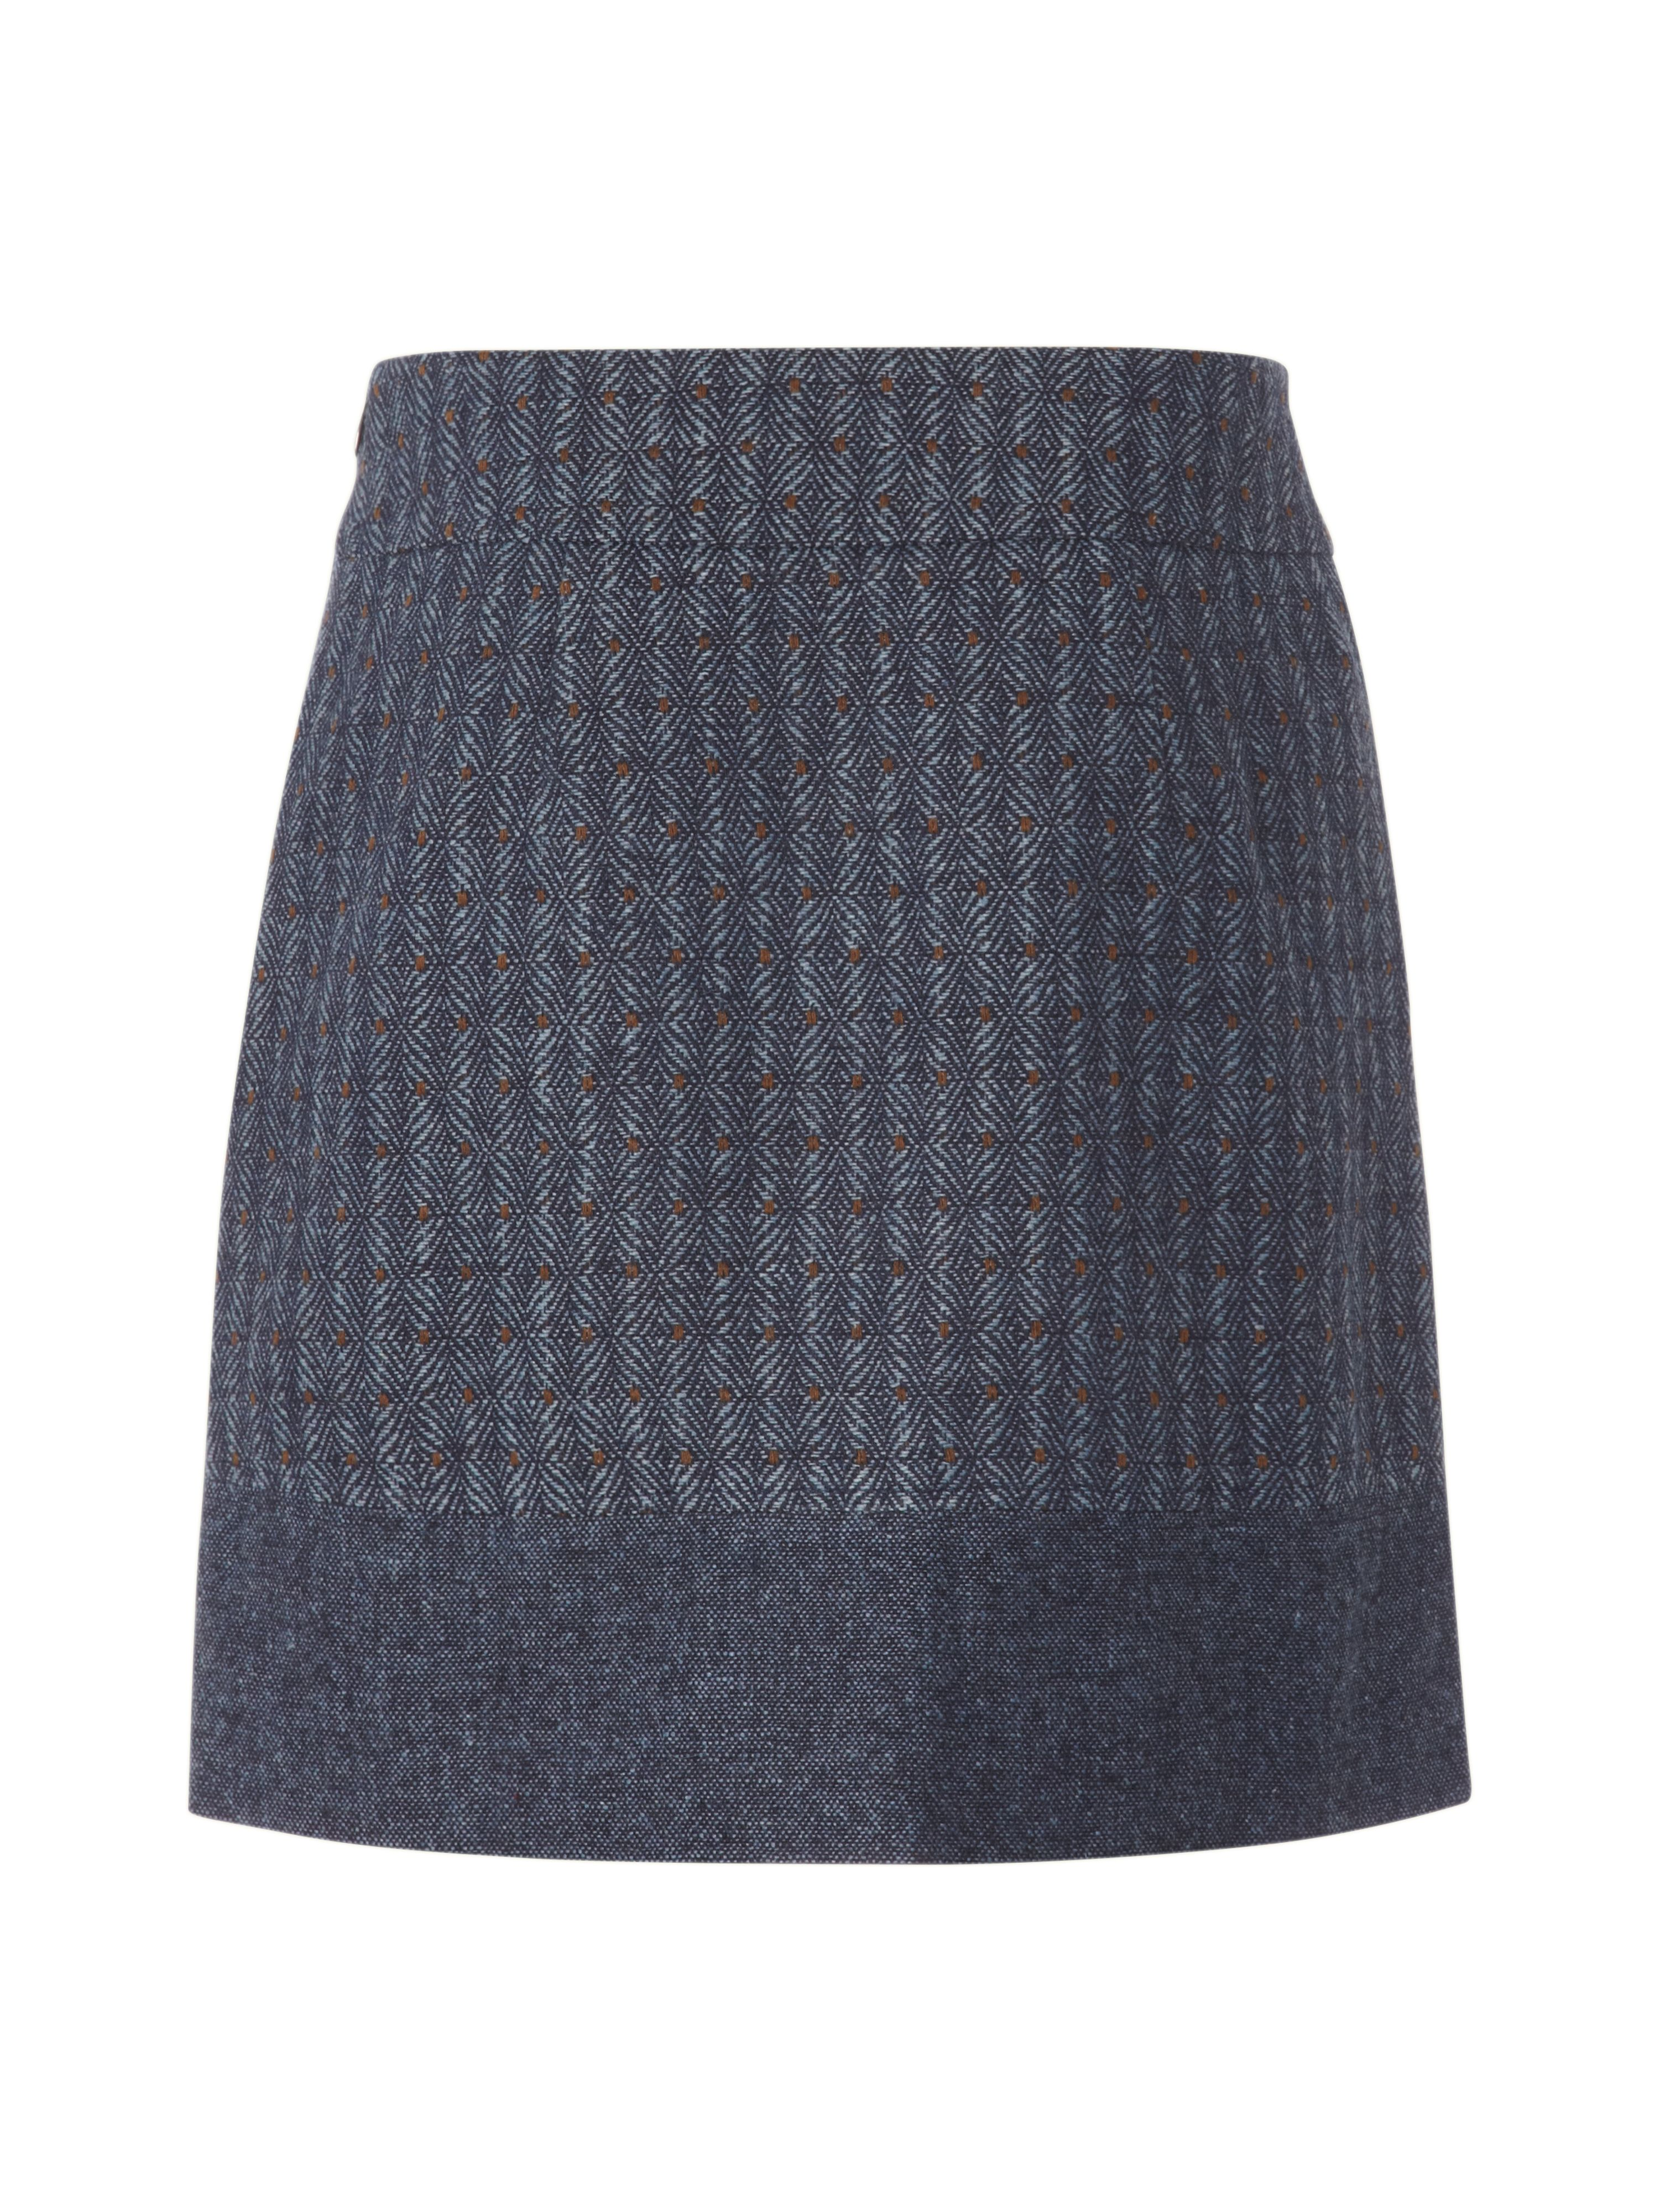 Tweed ascot skirt